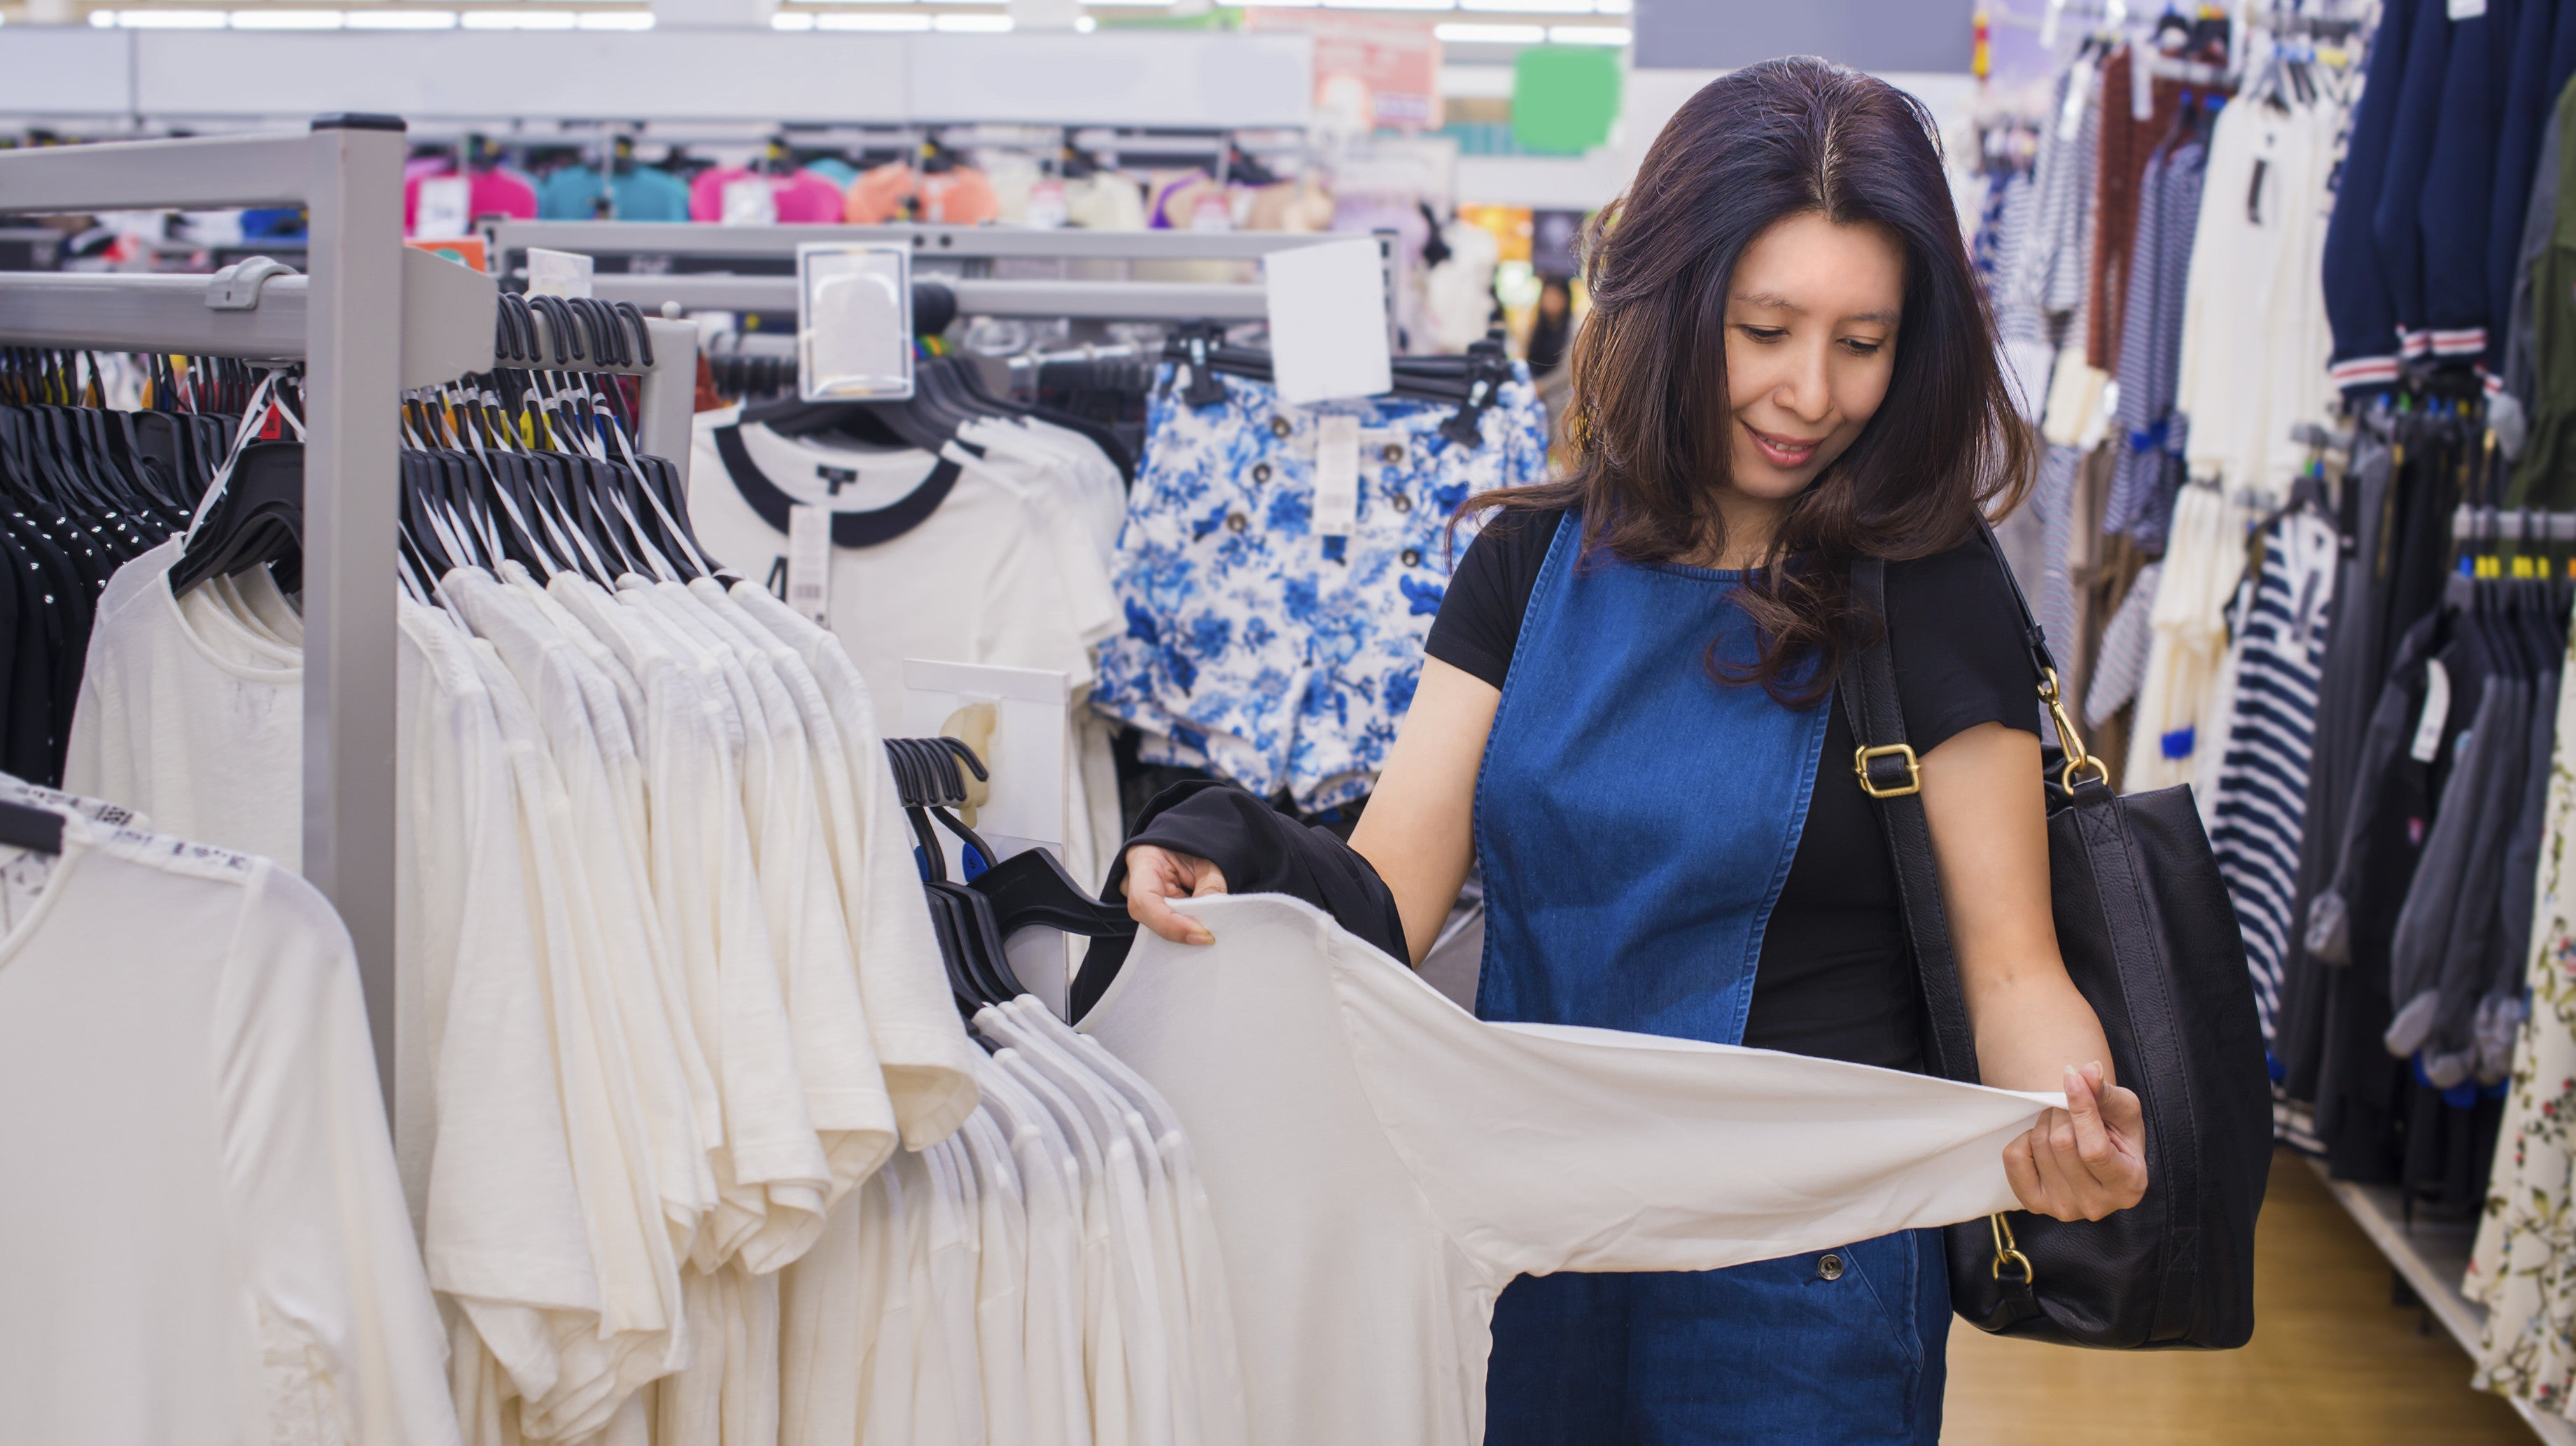 Eczema Triggers In Adults& Teenagers Clothes